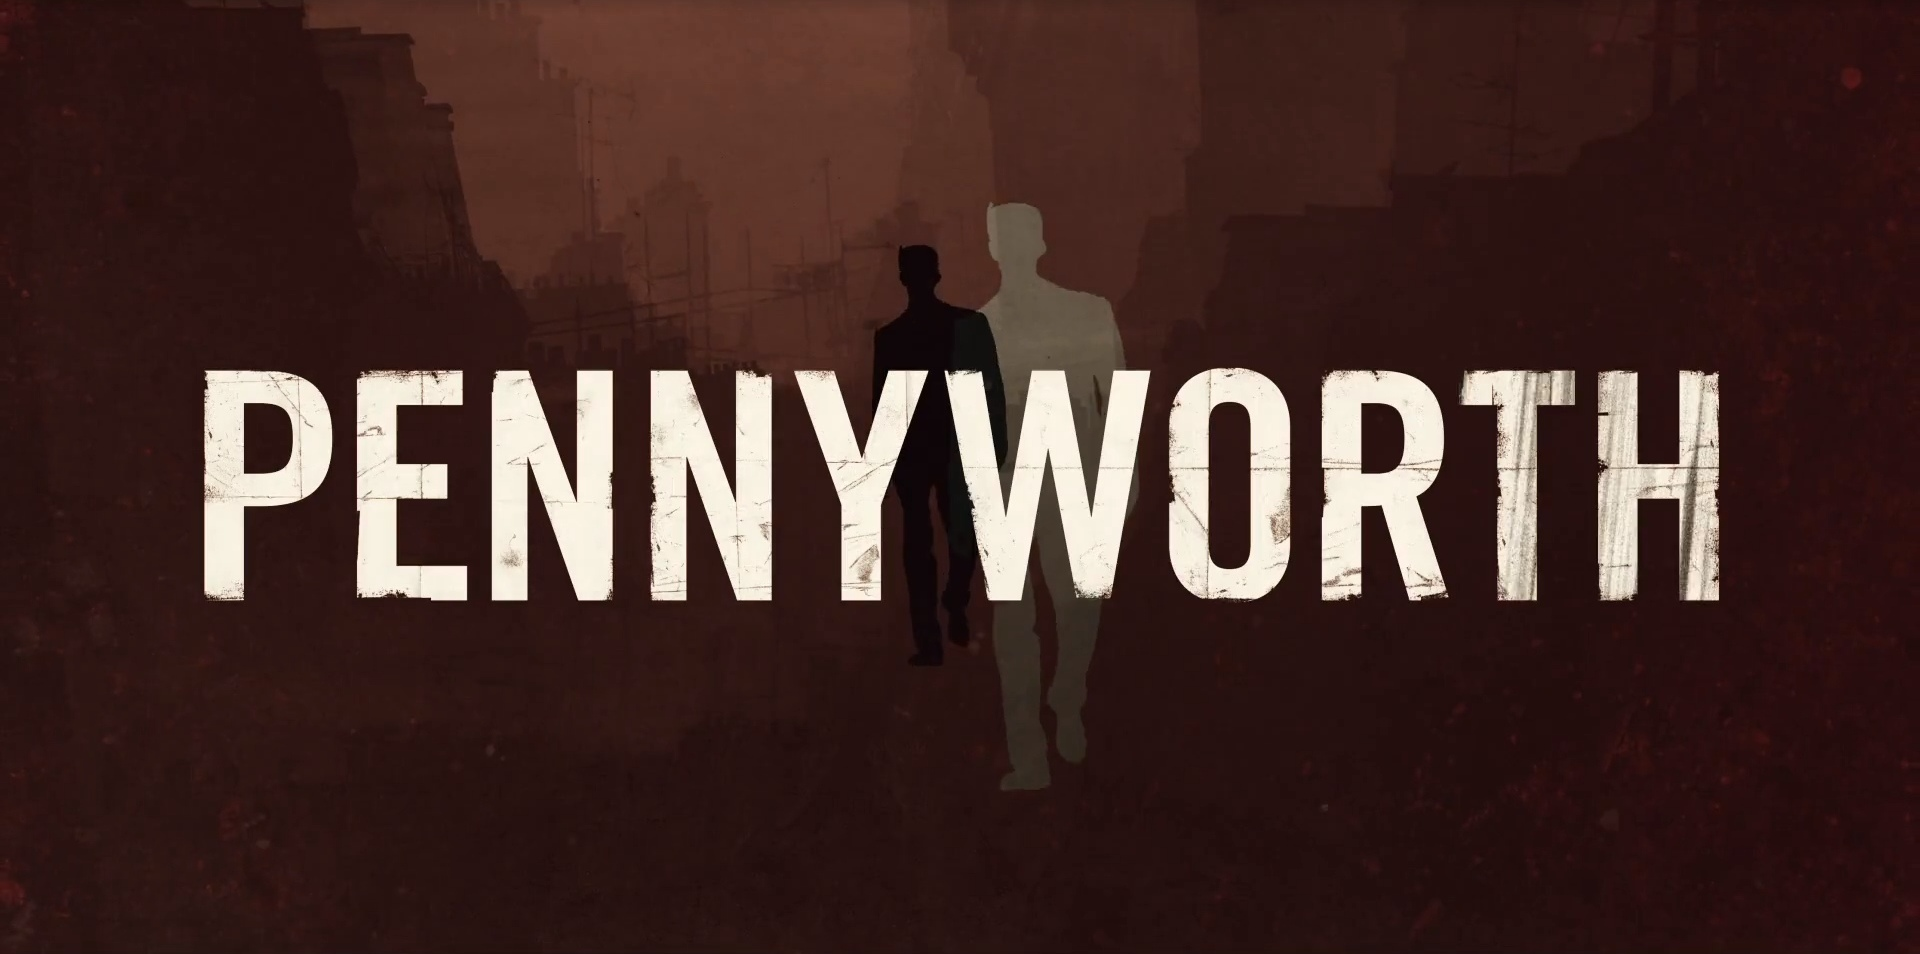 Pennyworth (TV Series) Episode: Alma Coogan